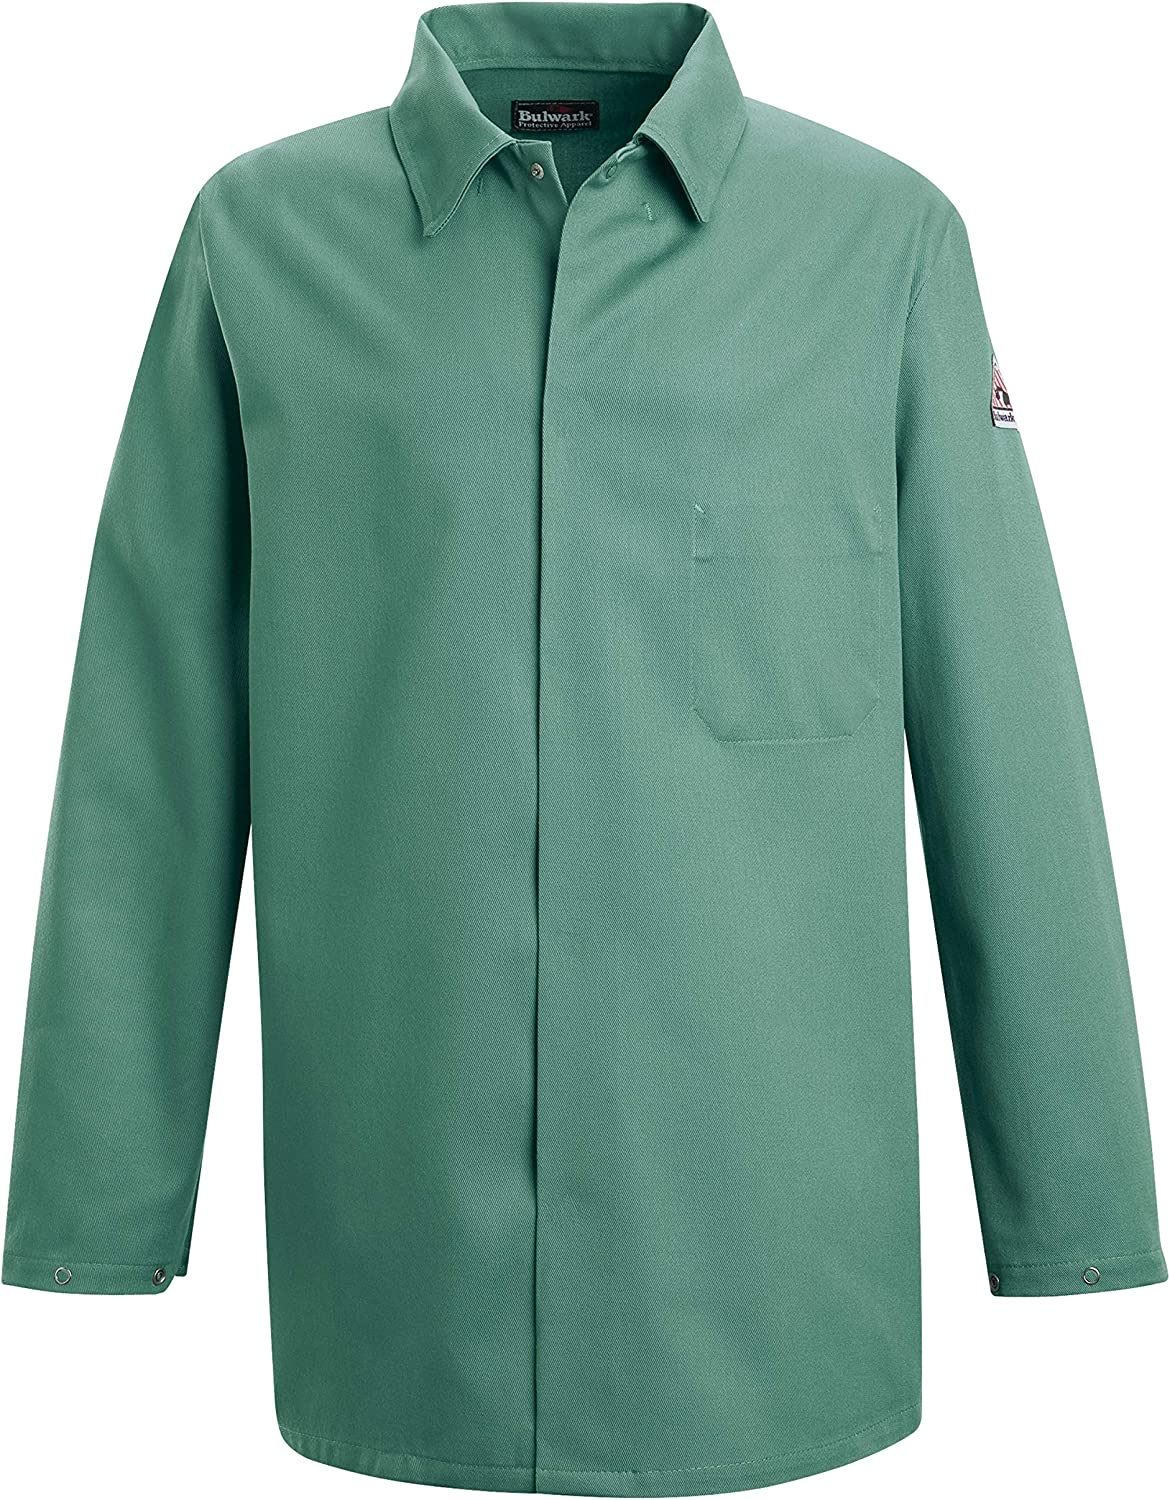 Bulwark Flame Resistant 9 oz Twill Cotton Excel FR Regular Work Coat with Top Stitched Collar, Visual Green: Clothing